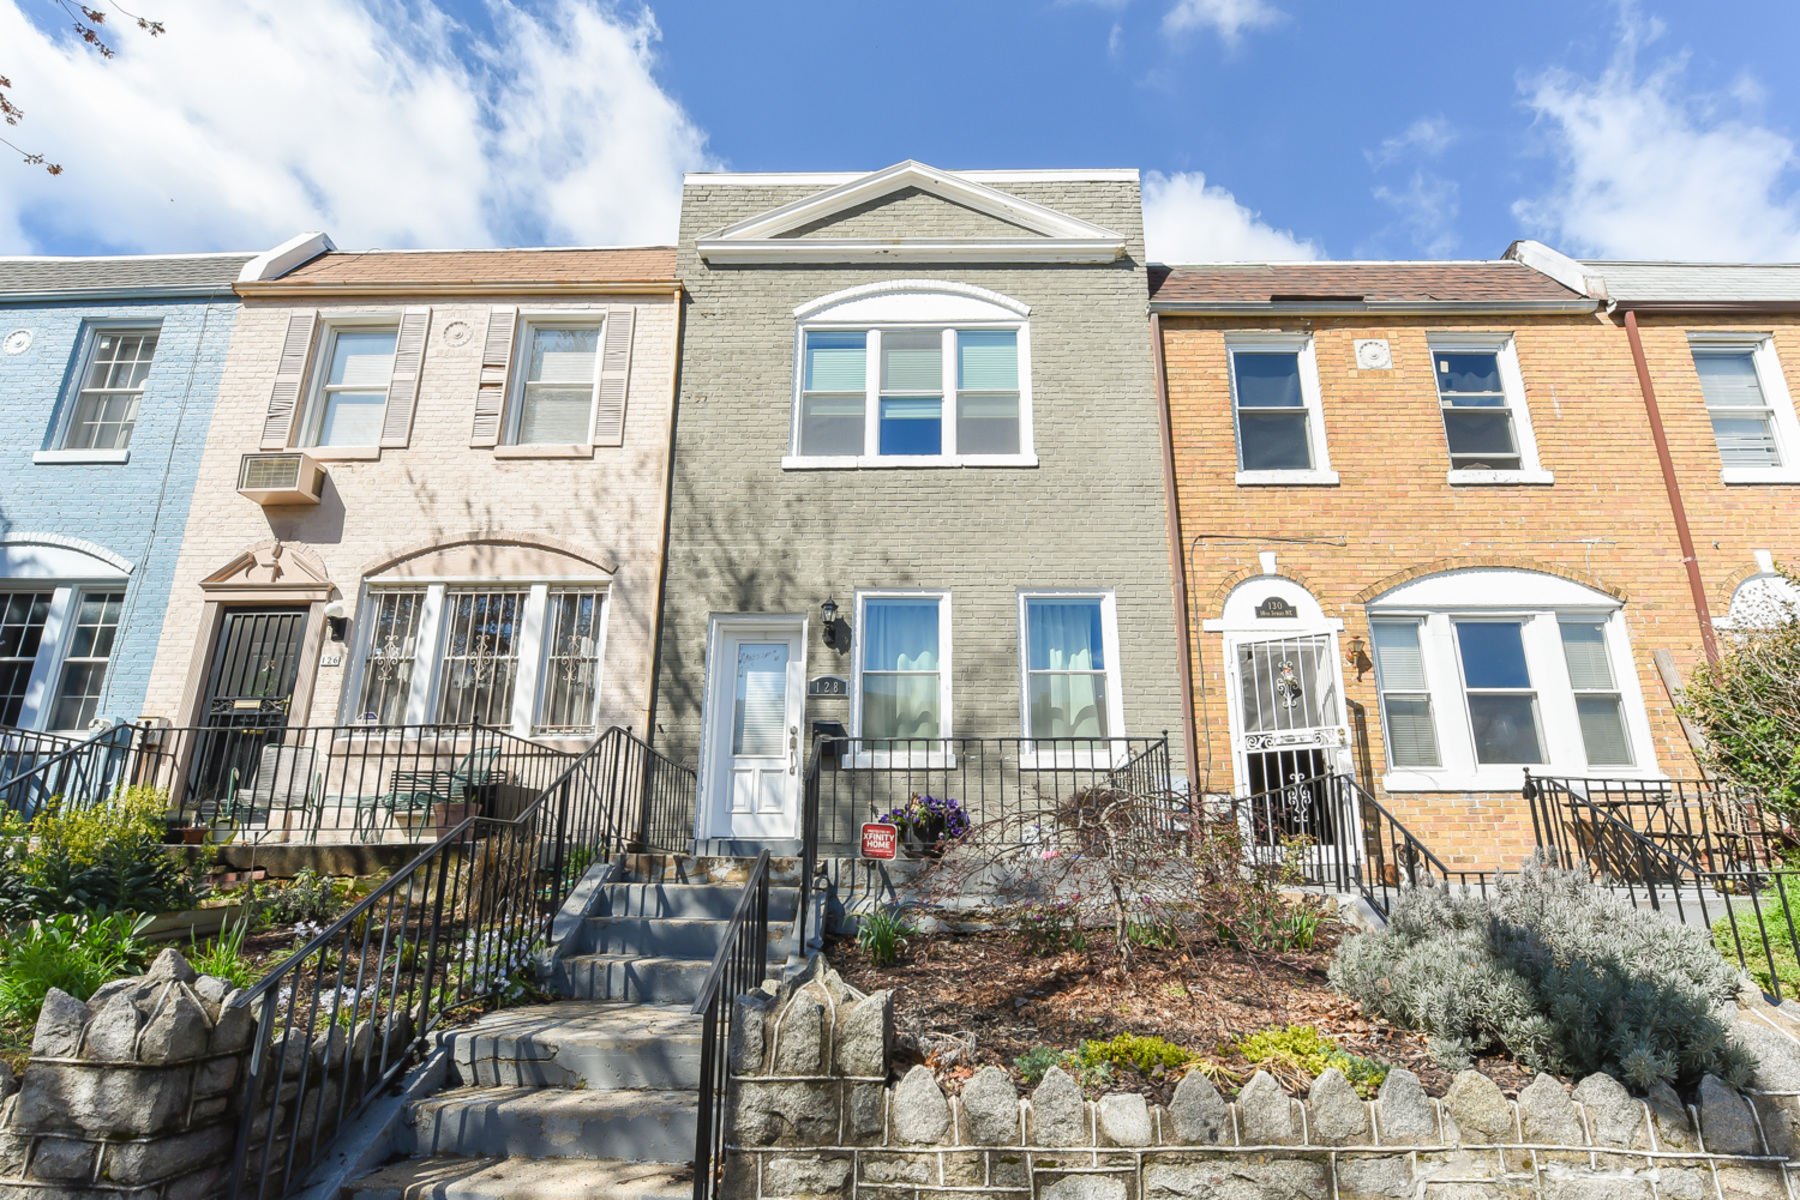 Townhouse for Sale at 128 16th Street Ne, Washington Washington, District Of Columbia, 20002 United States